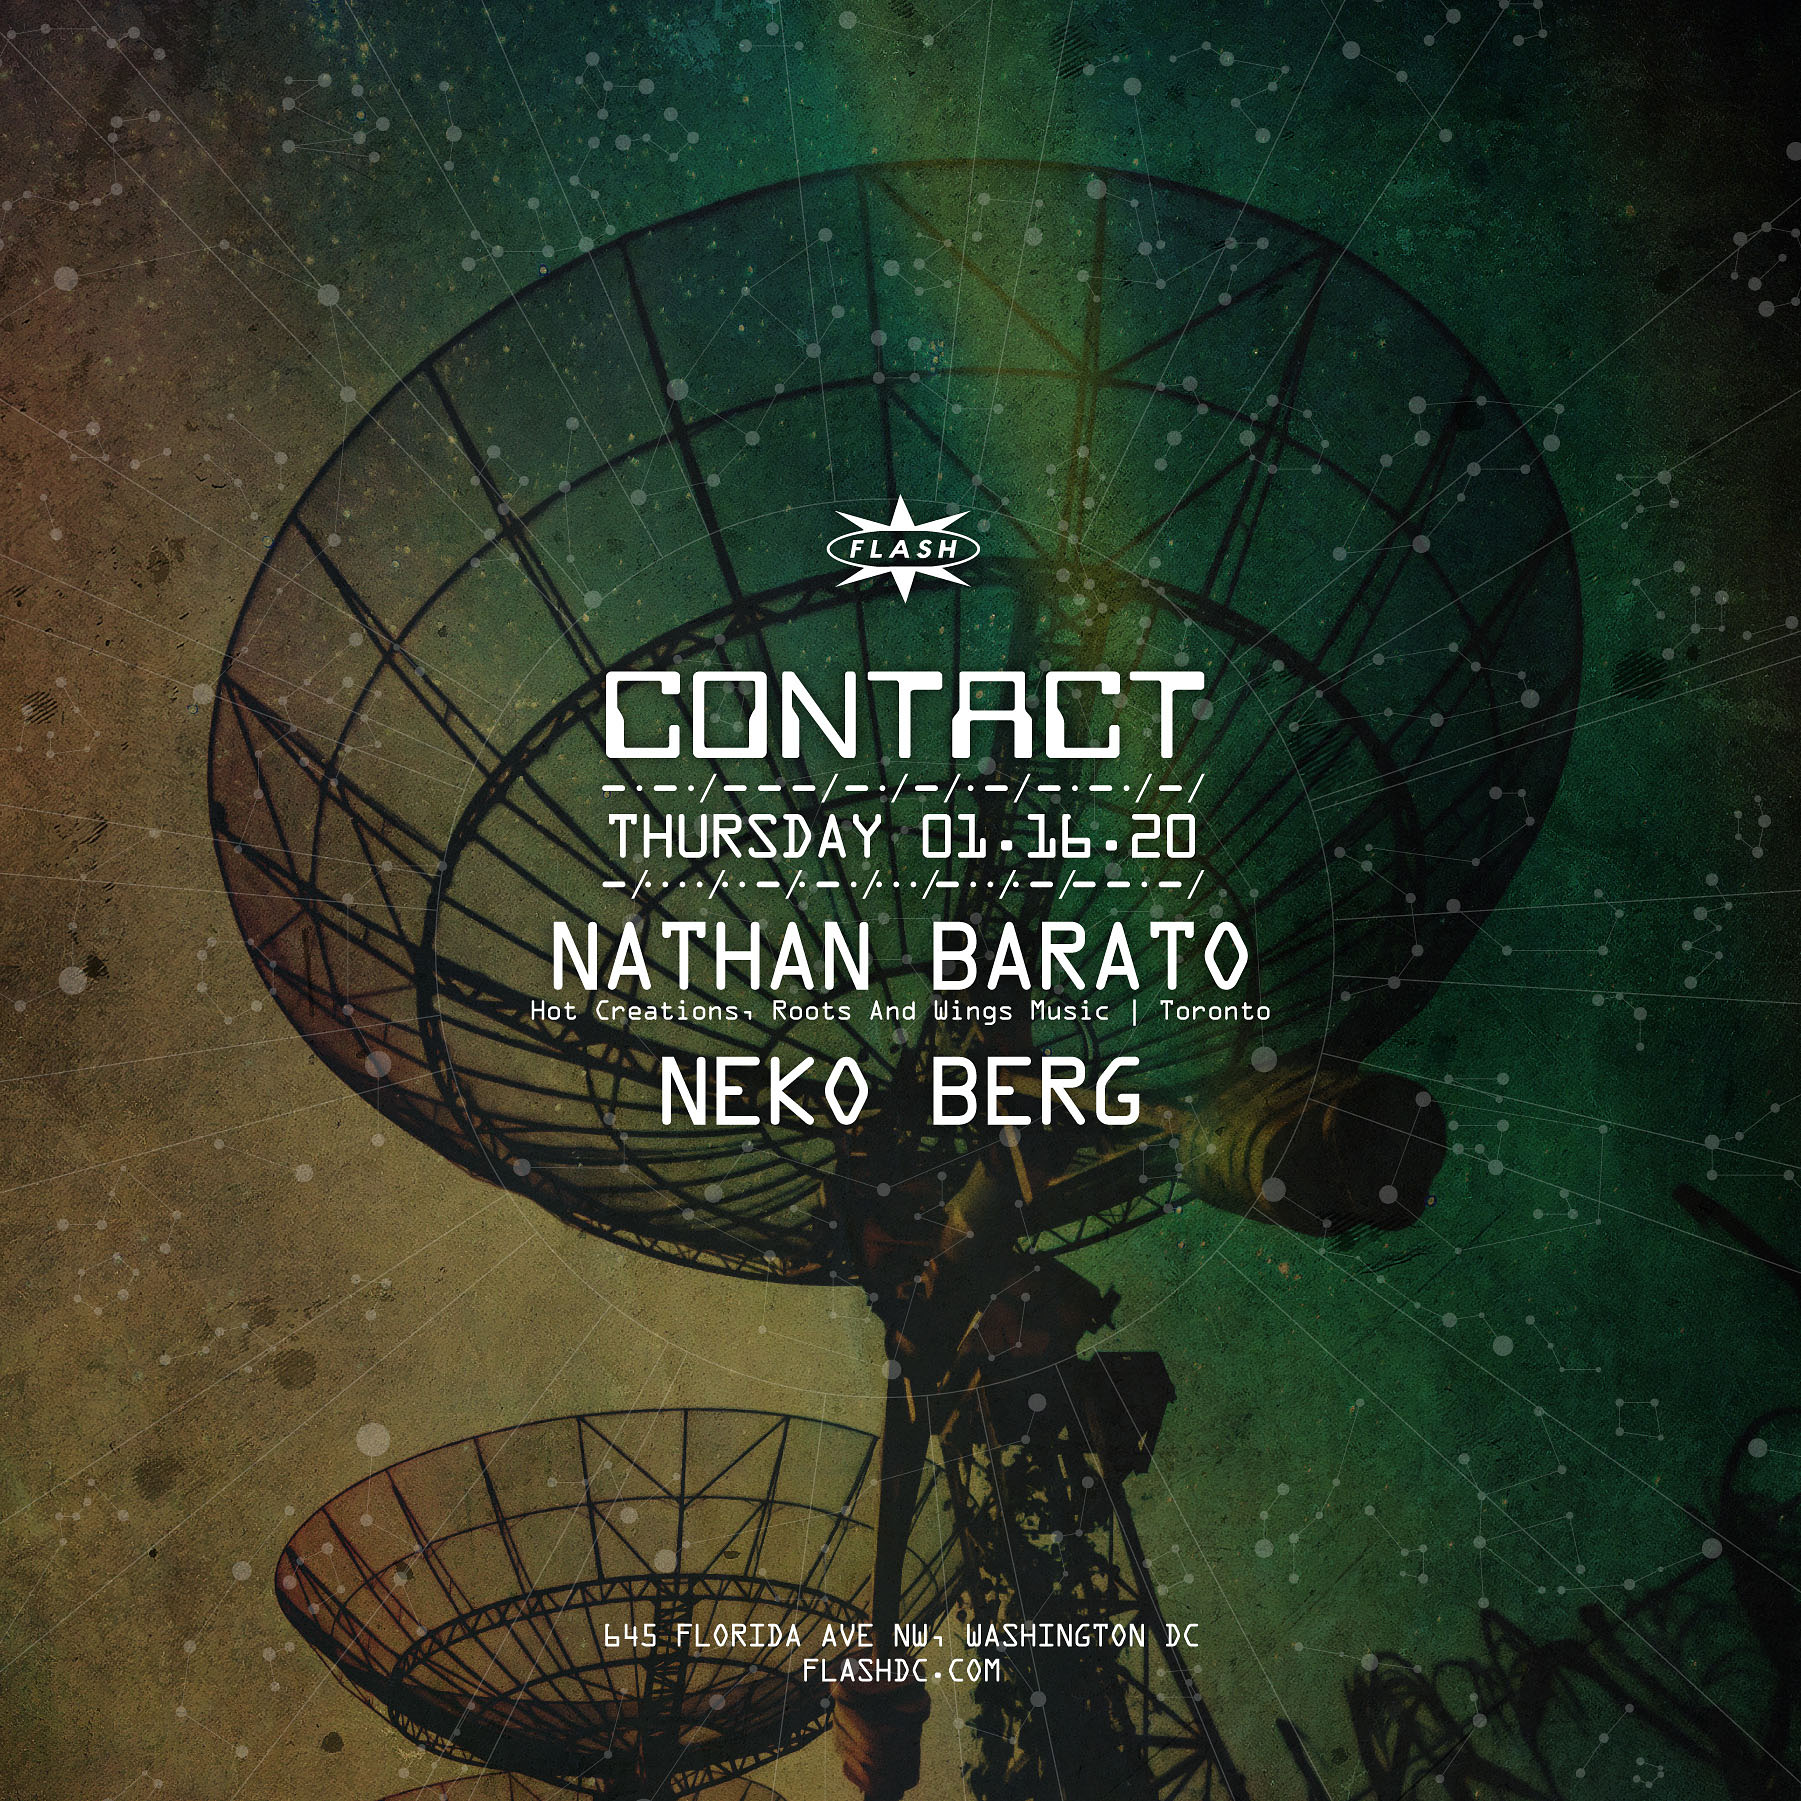 CONTACT: Nathan Barato event thumbnail